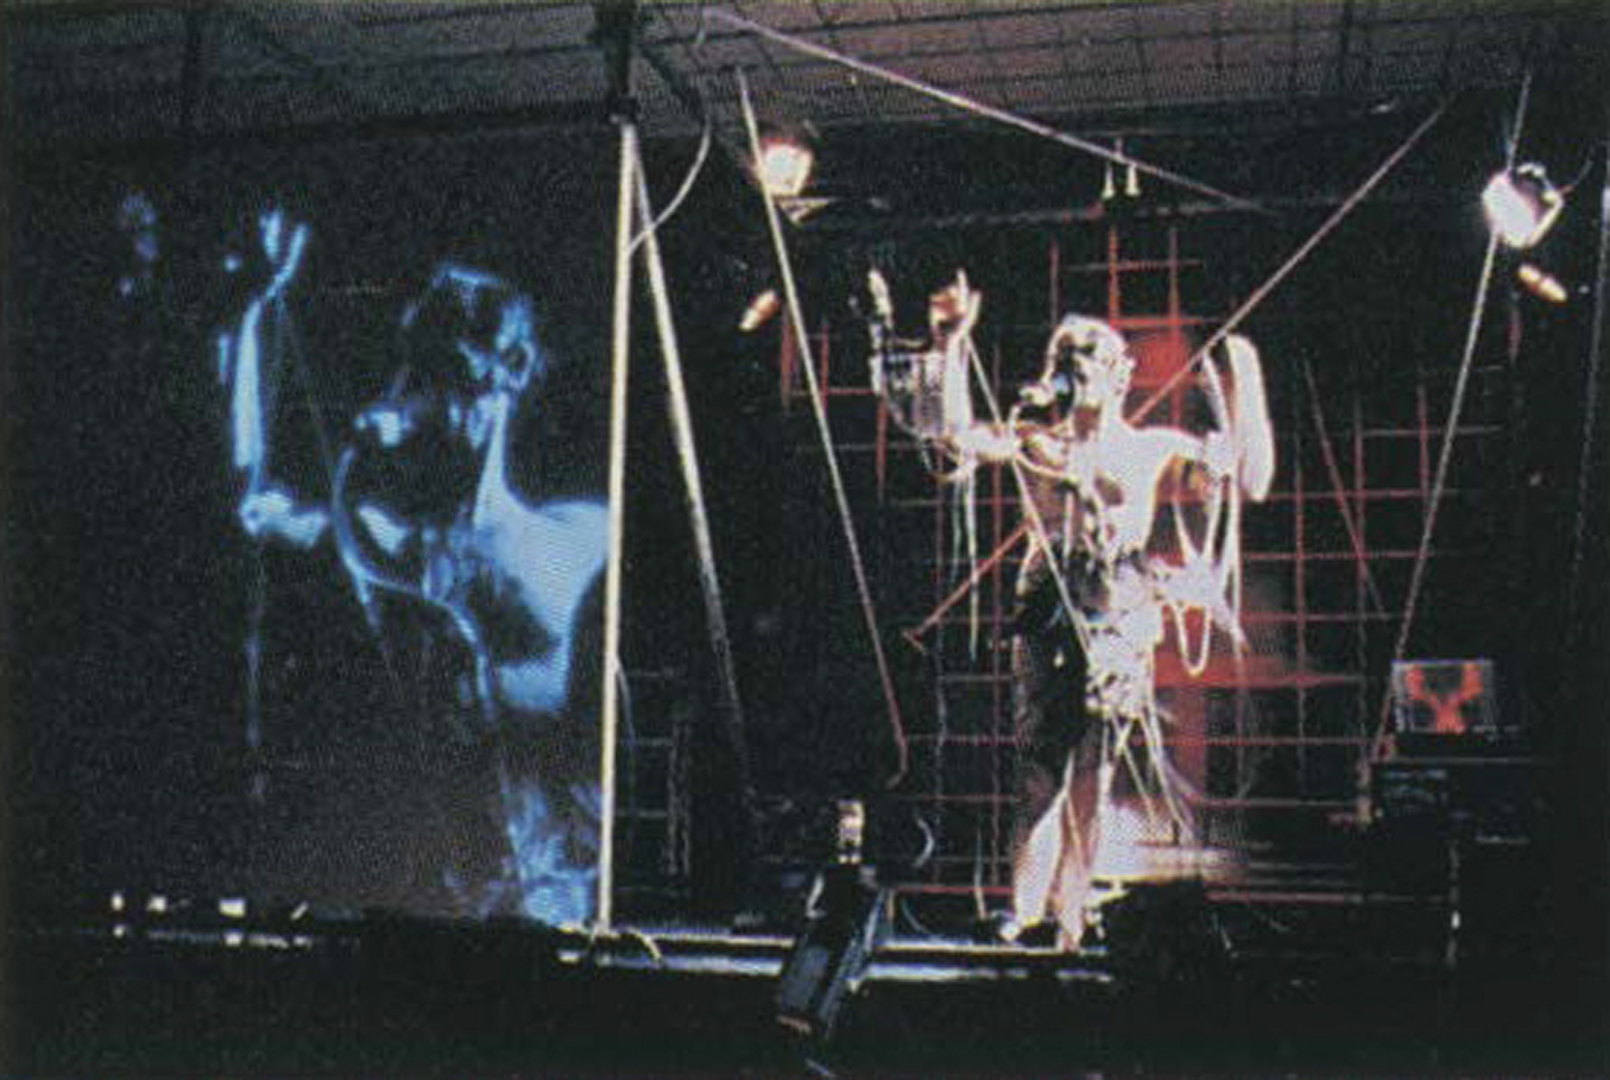 ©, Stelarc, Performance for Amplified Body with Third Arm and Robot